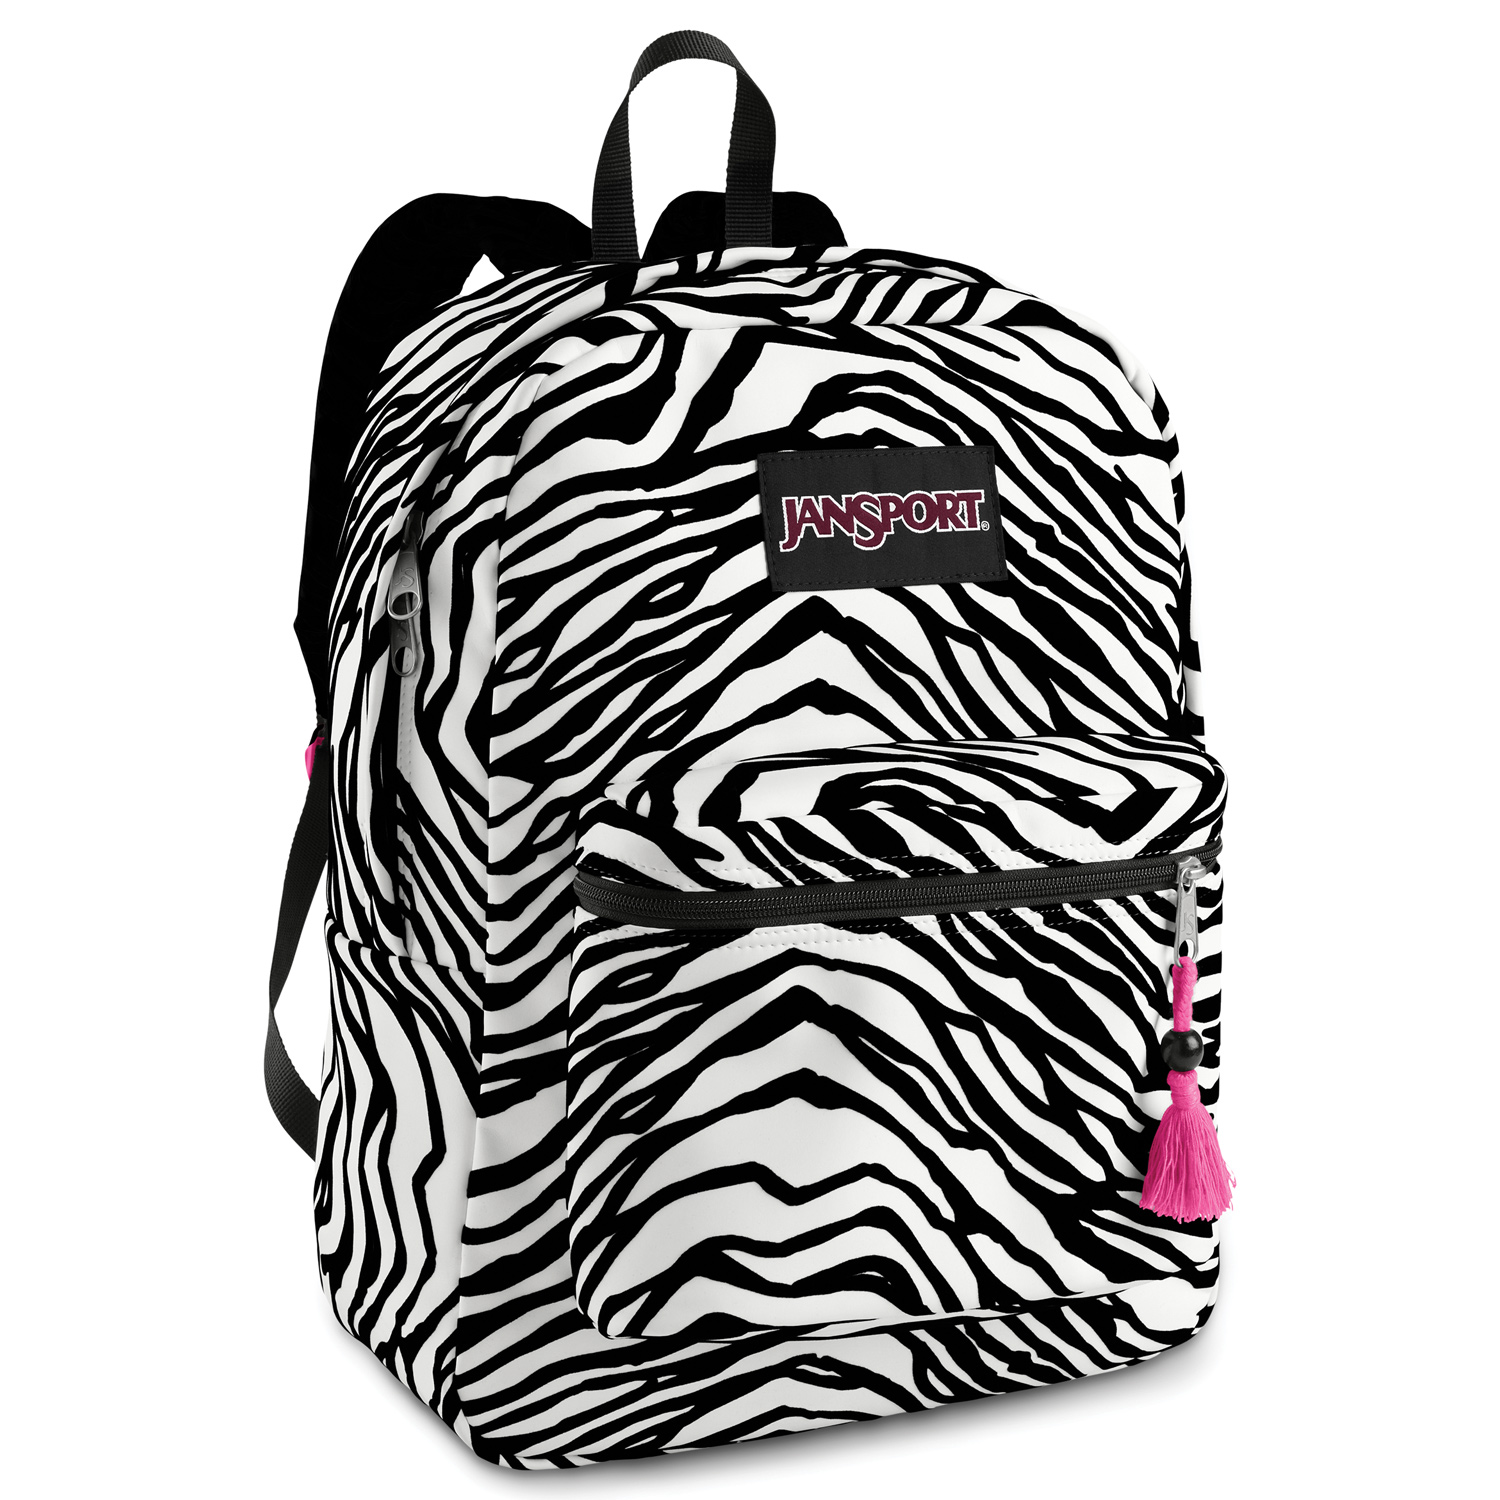 Zebra Jansport Backpack fYAtEgNS